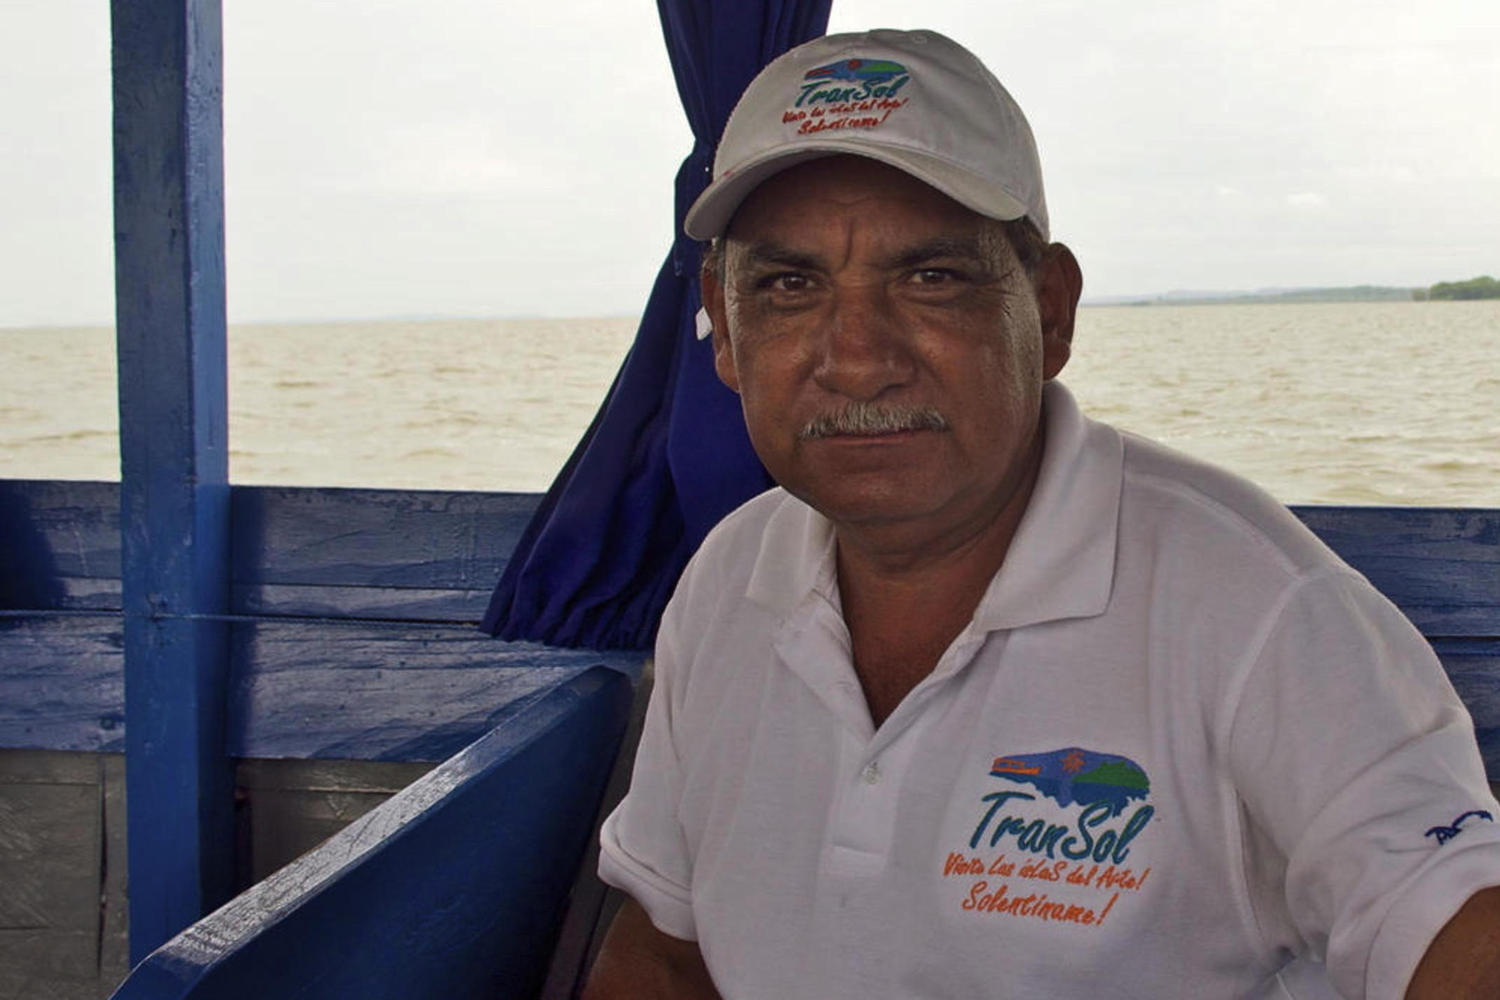 Friendly boat captain in Solentiname